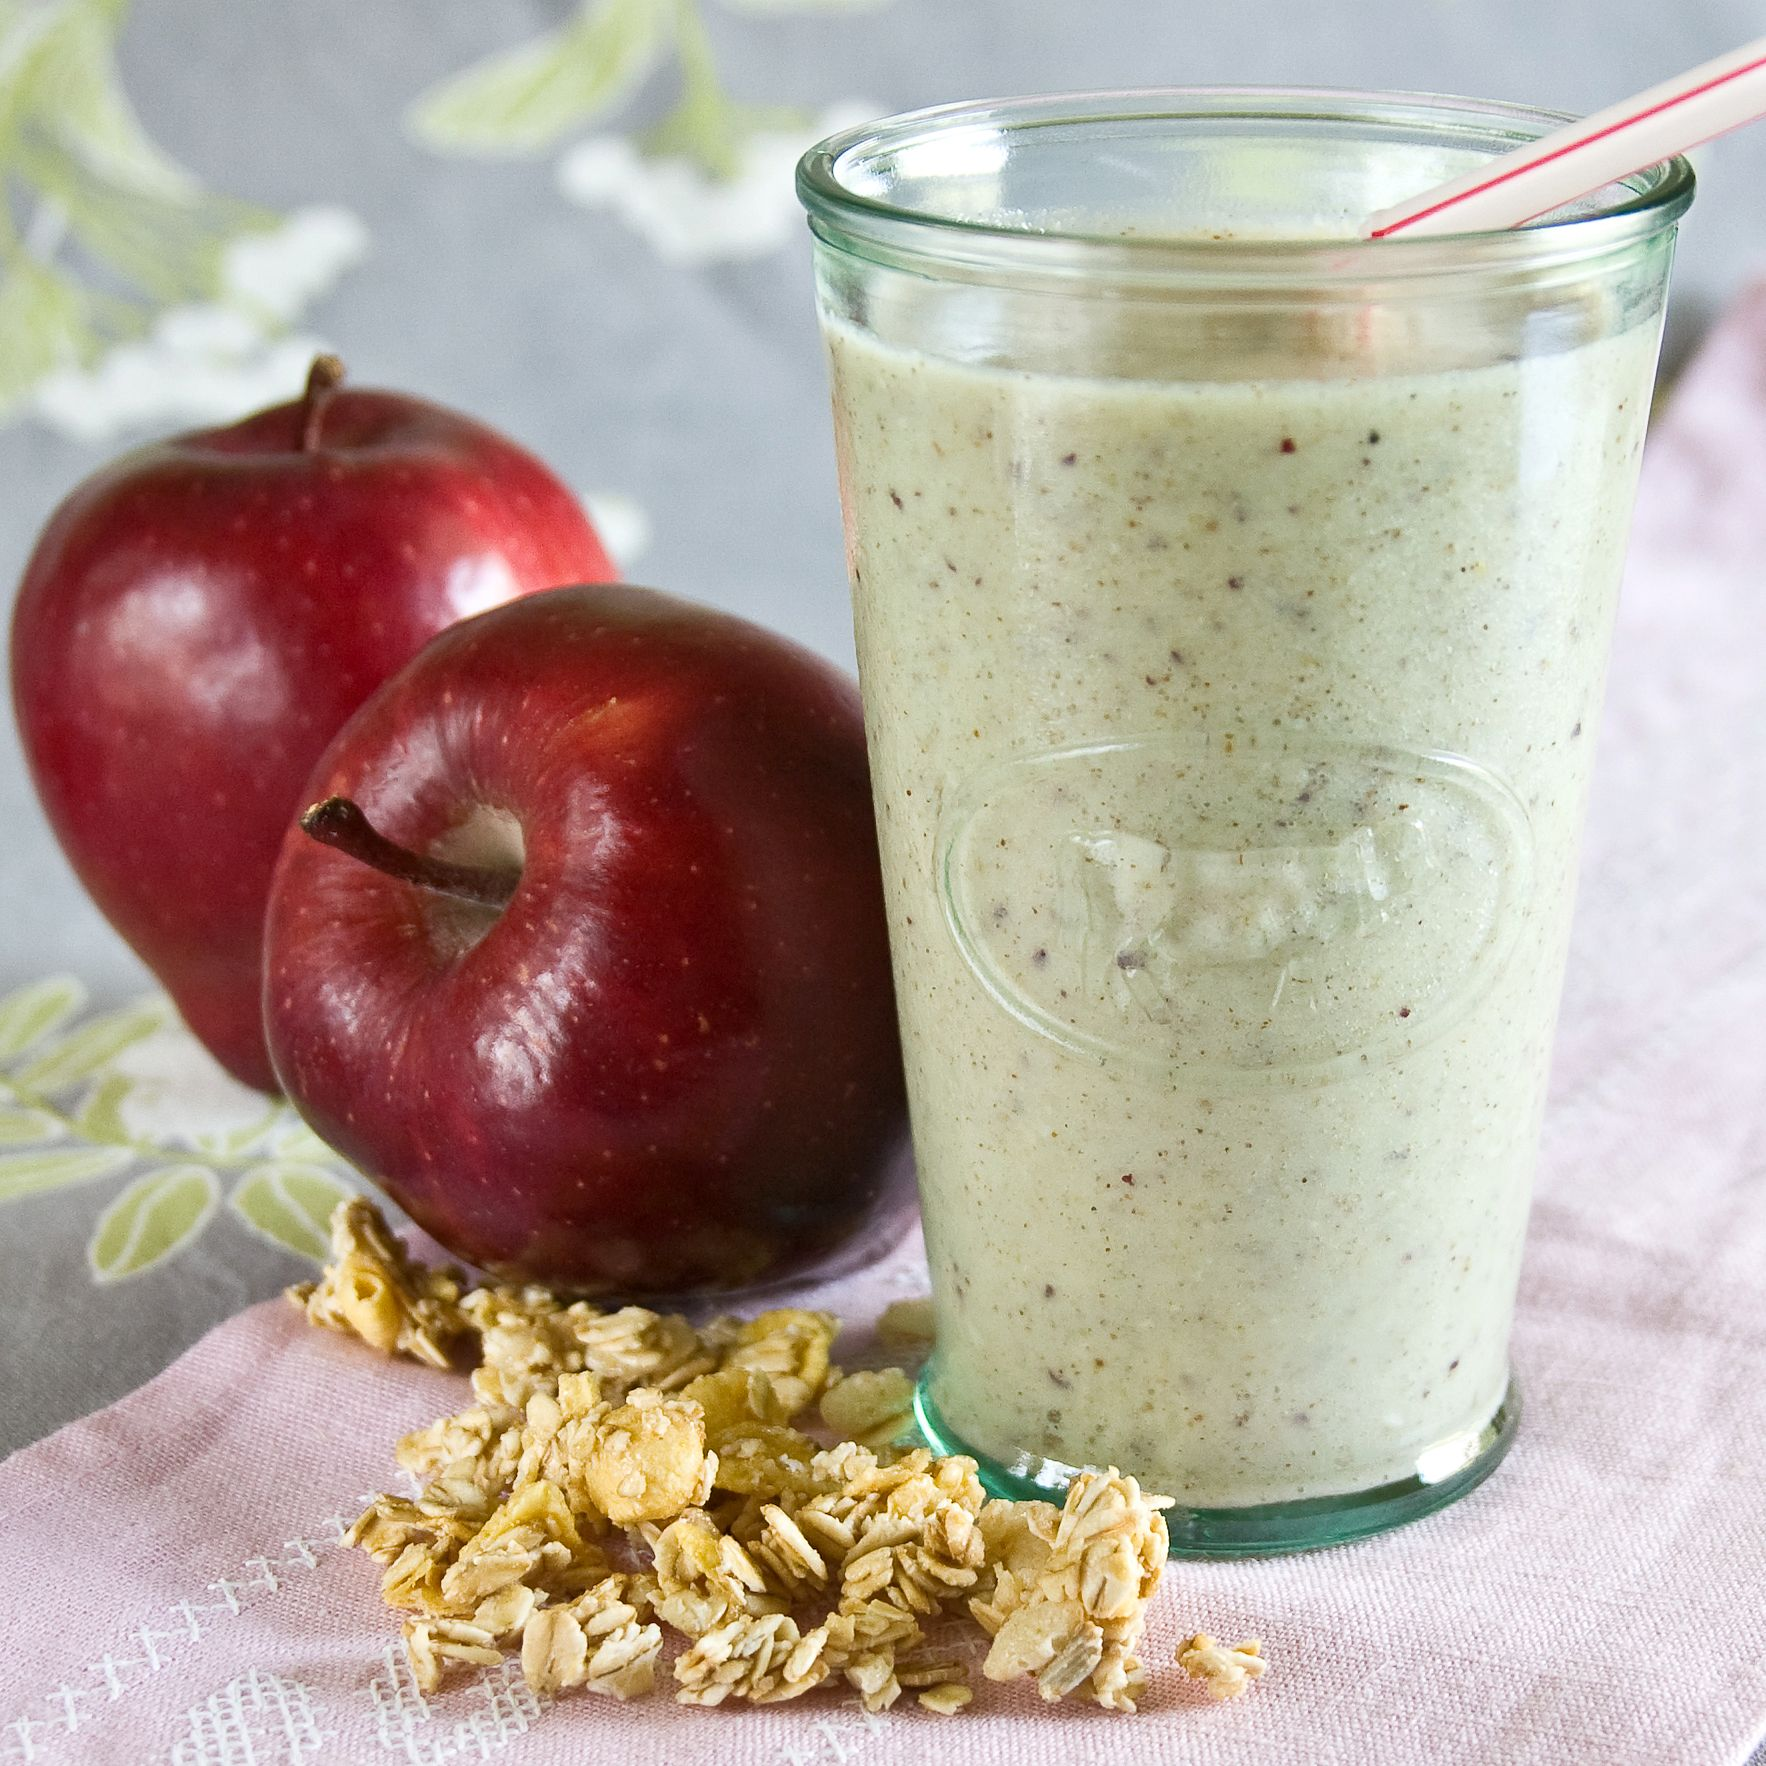 Another Apple Pie Smoothie.